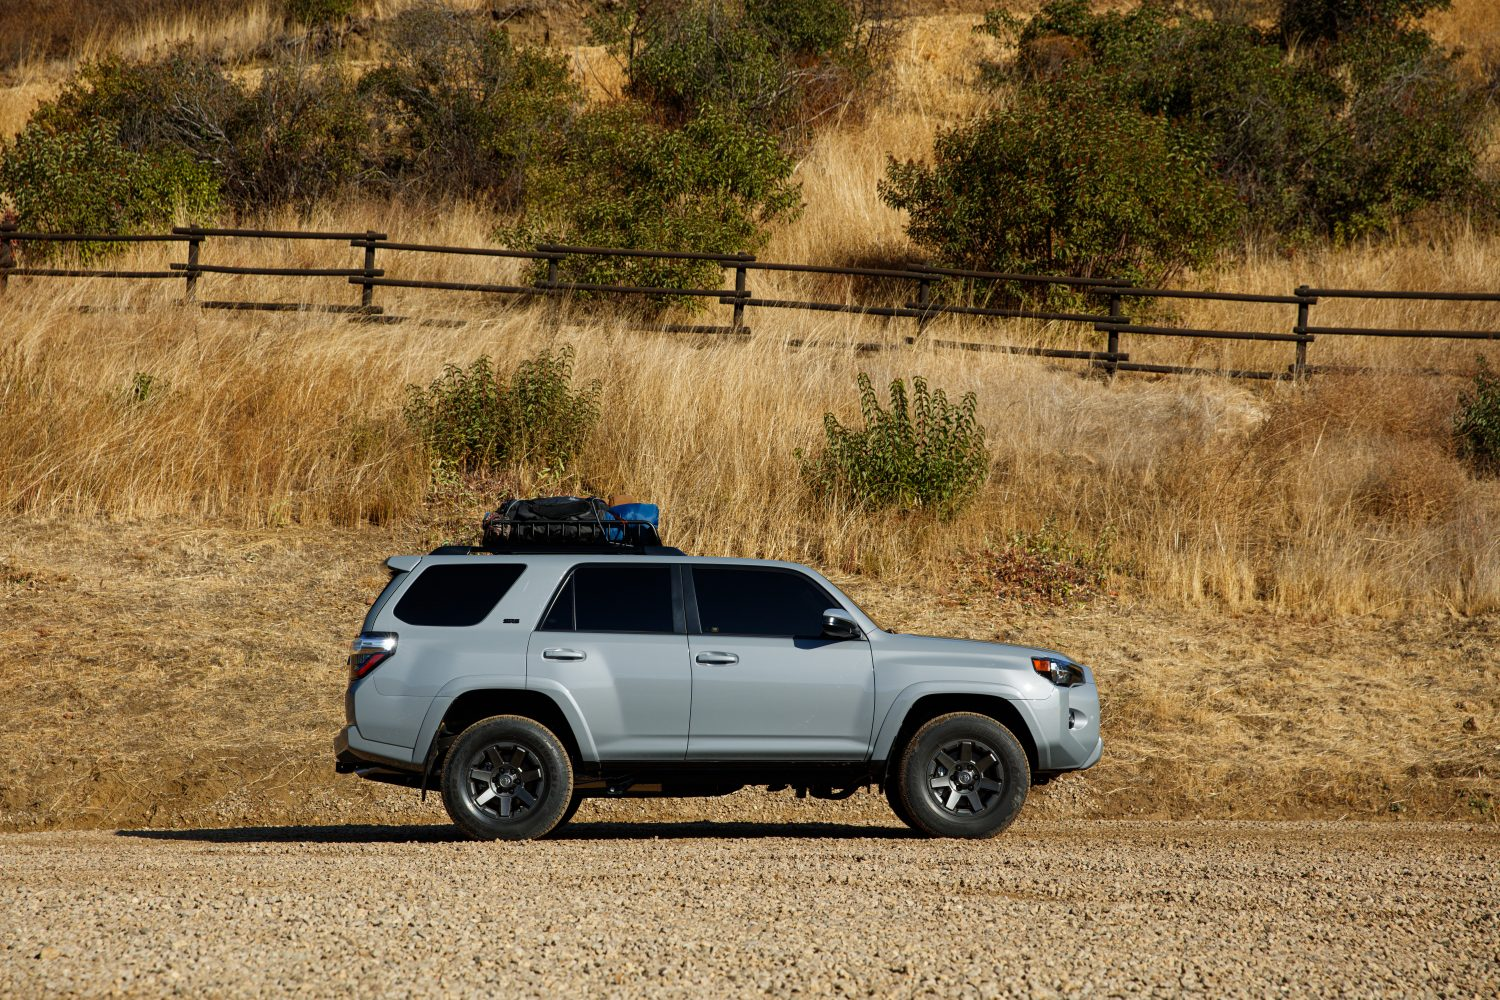 the 2021 Toyota 4Runner trail edition driving off-road in a field